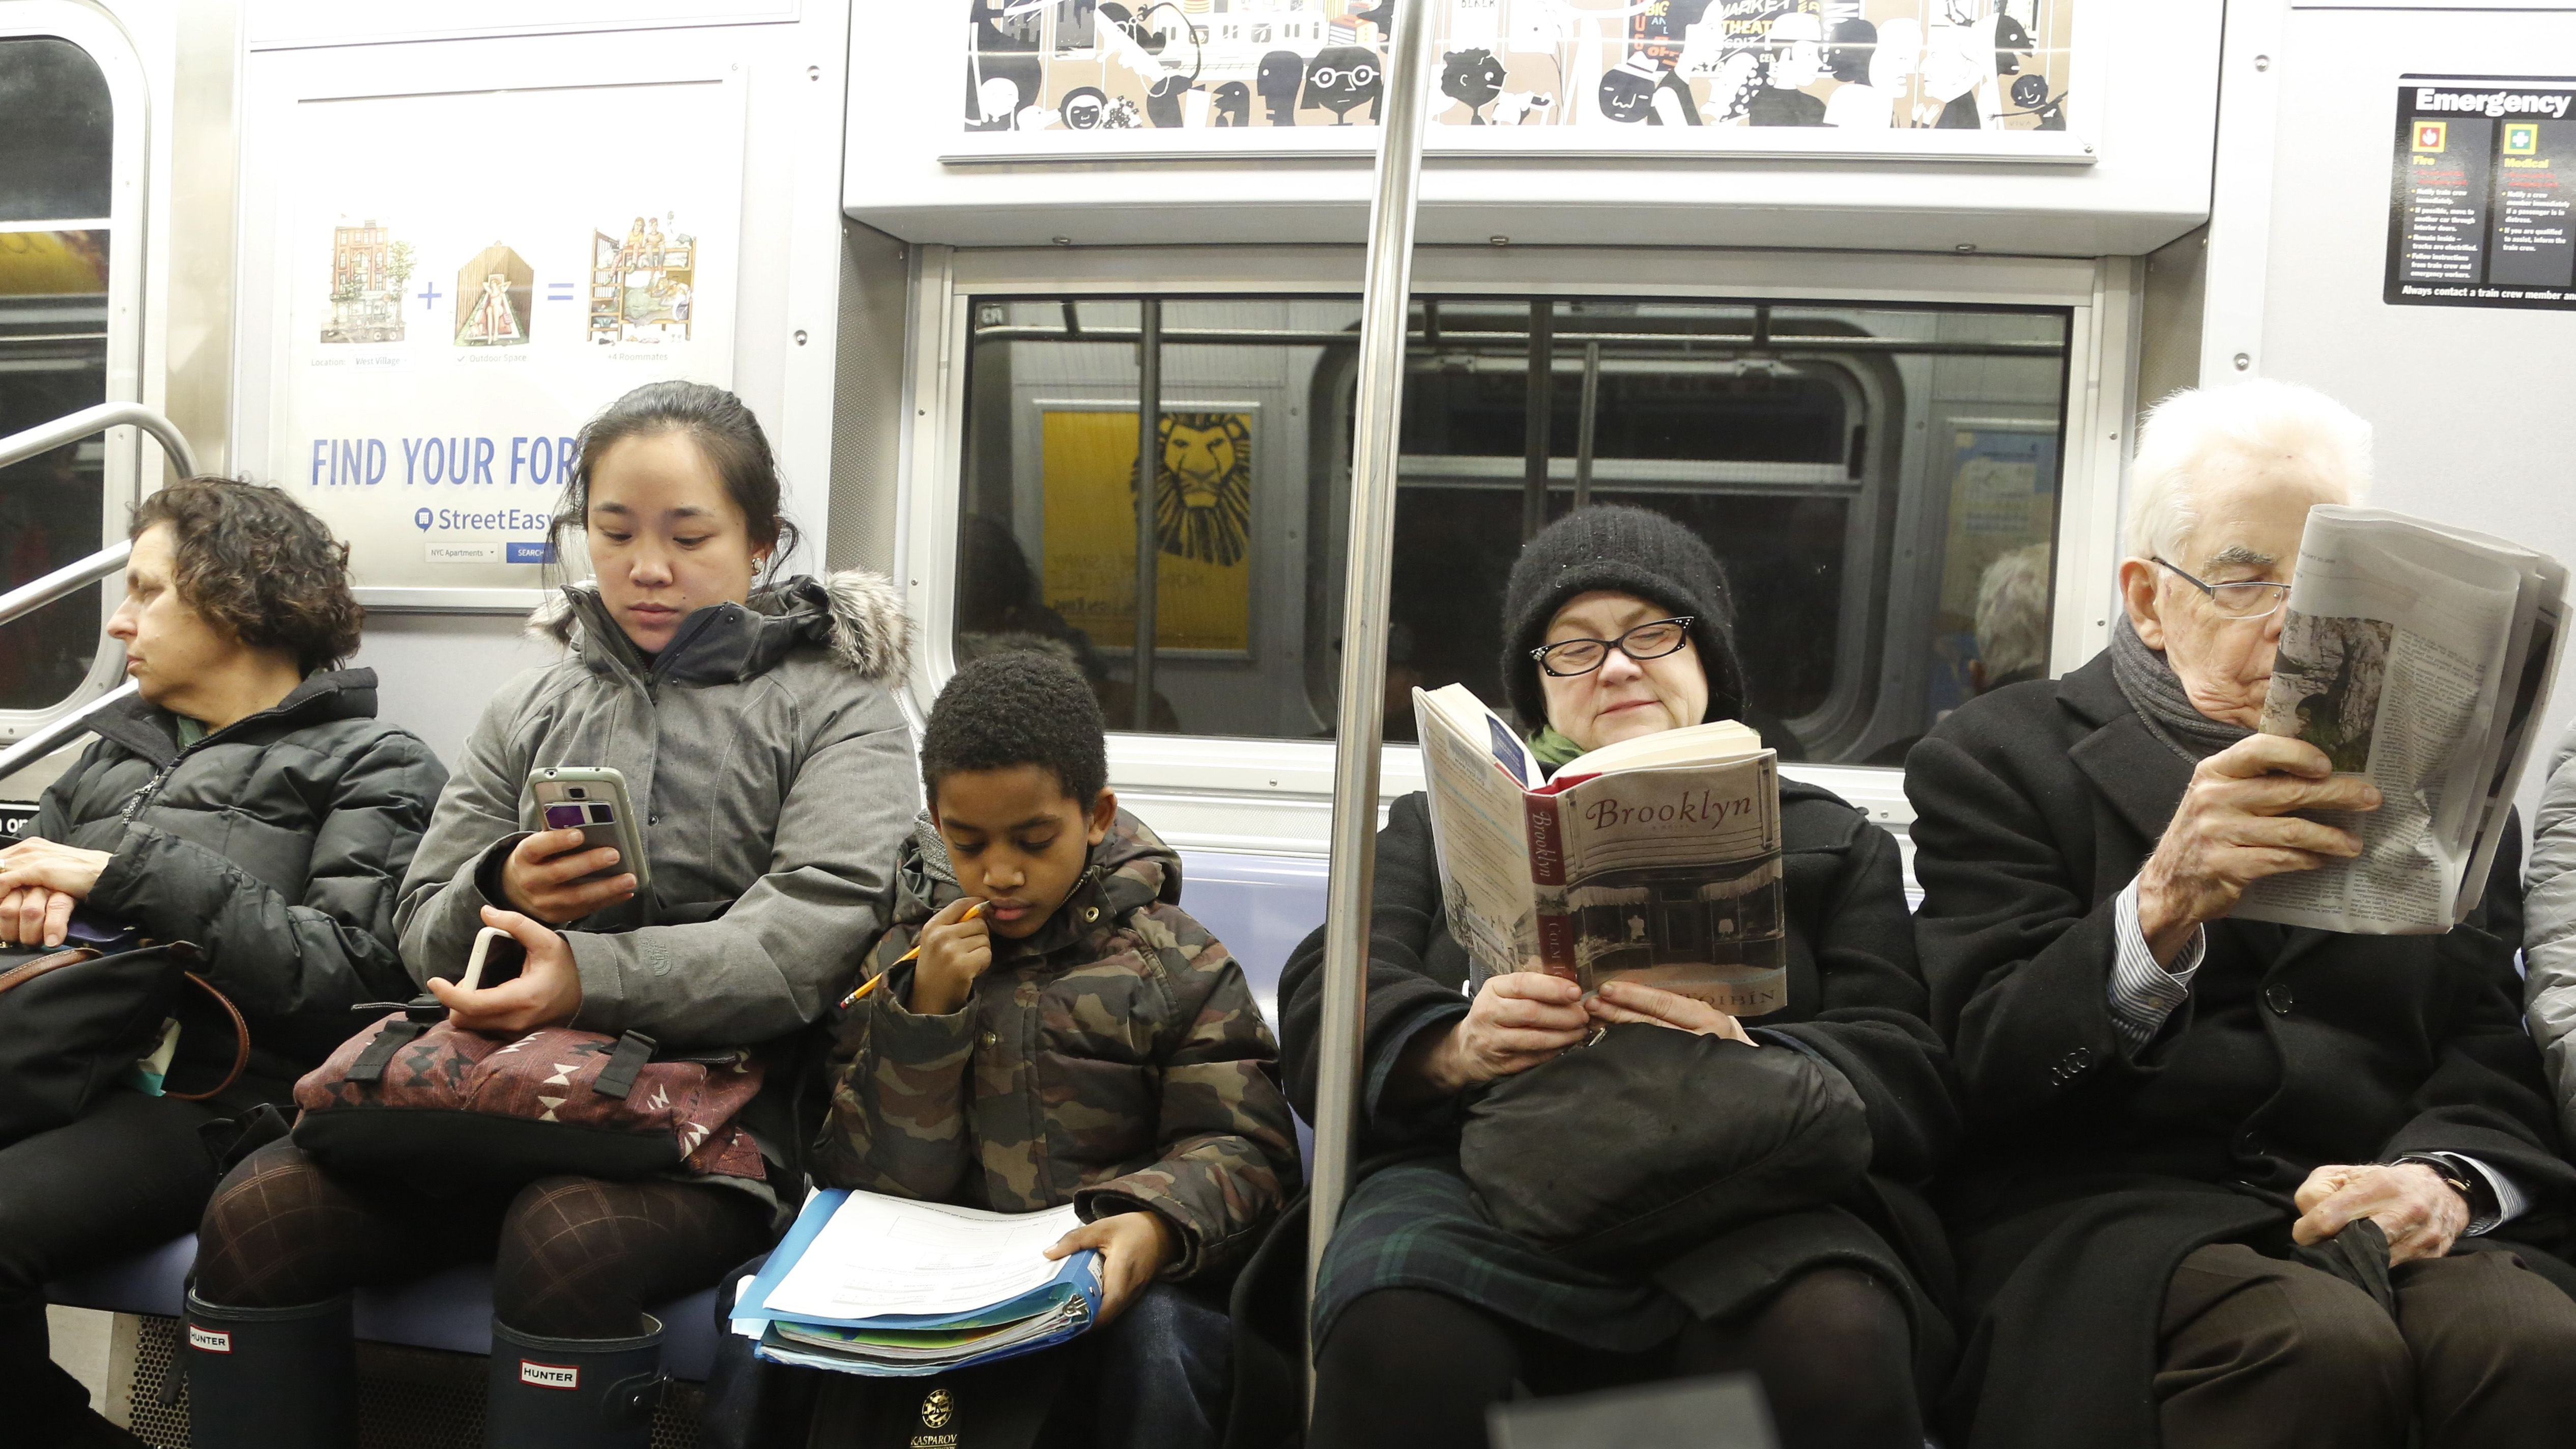 A schoolboy looks at his homework while riding the subway, Feb. 23, 2016 in New York. (AP Photo/Mark Lennihan)